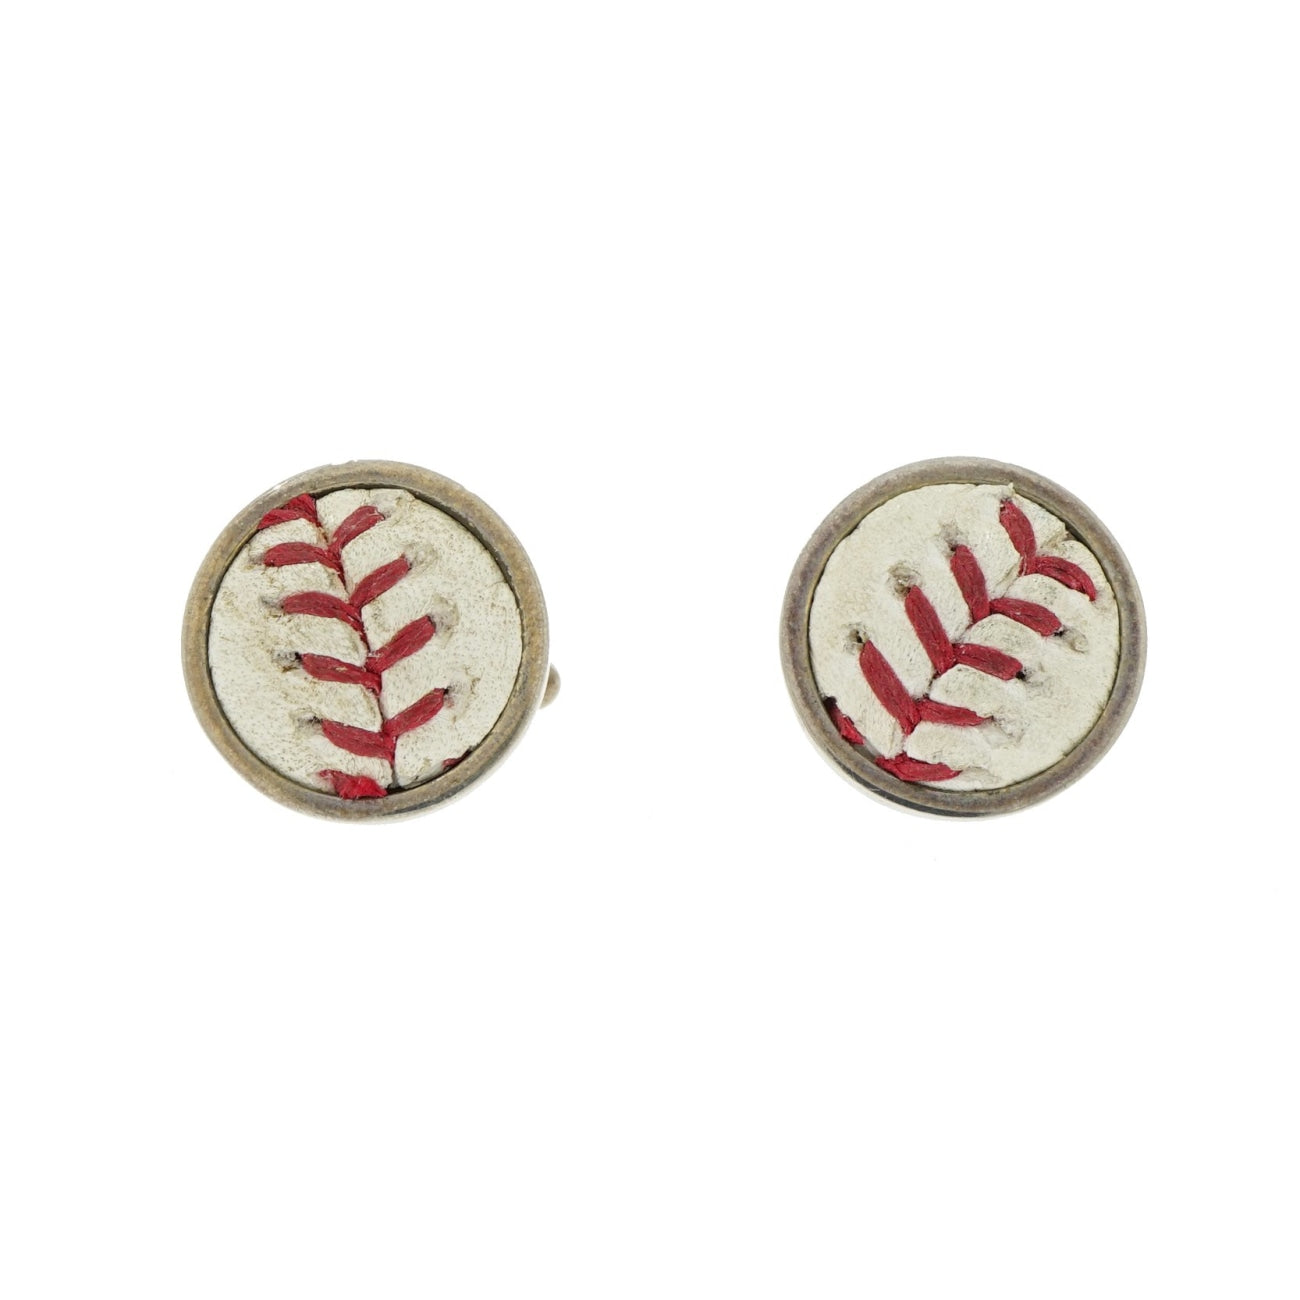 Manfredi Jewels Accessories - Mets Baseball Sterling Silver Cufflinks | Manfredi Jewels